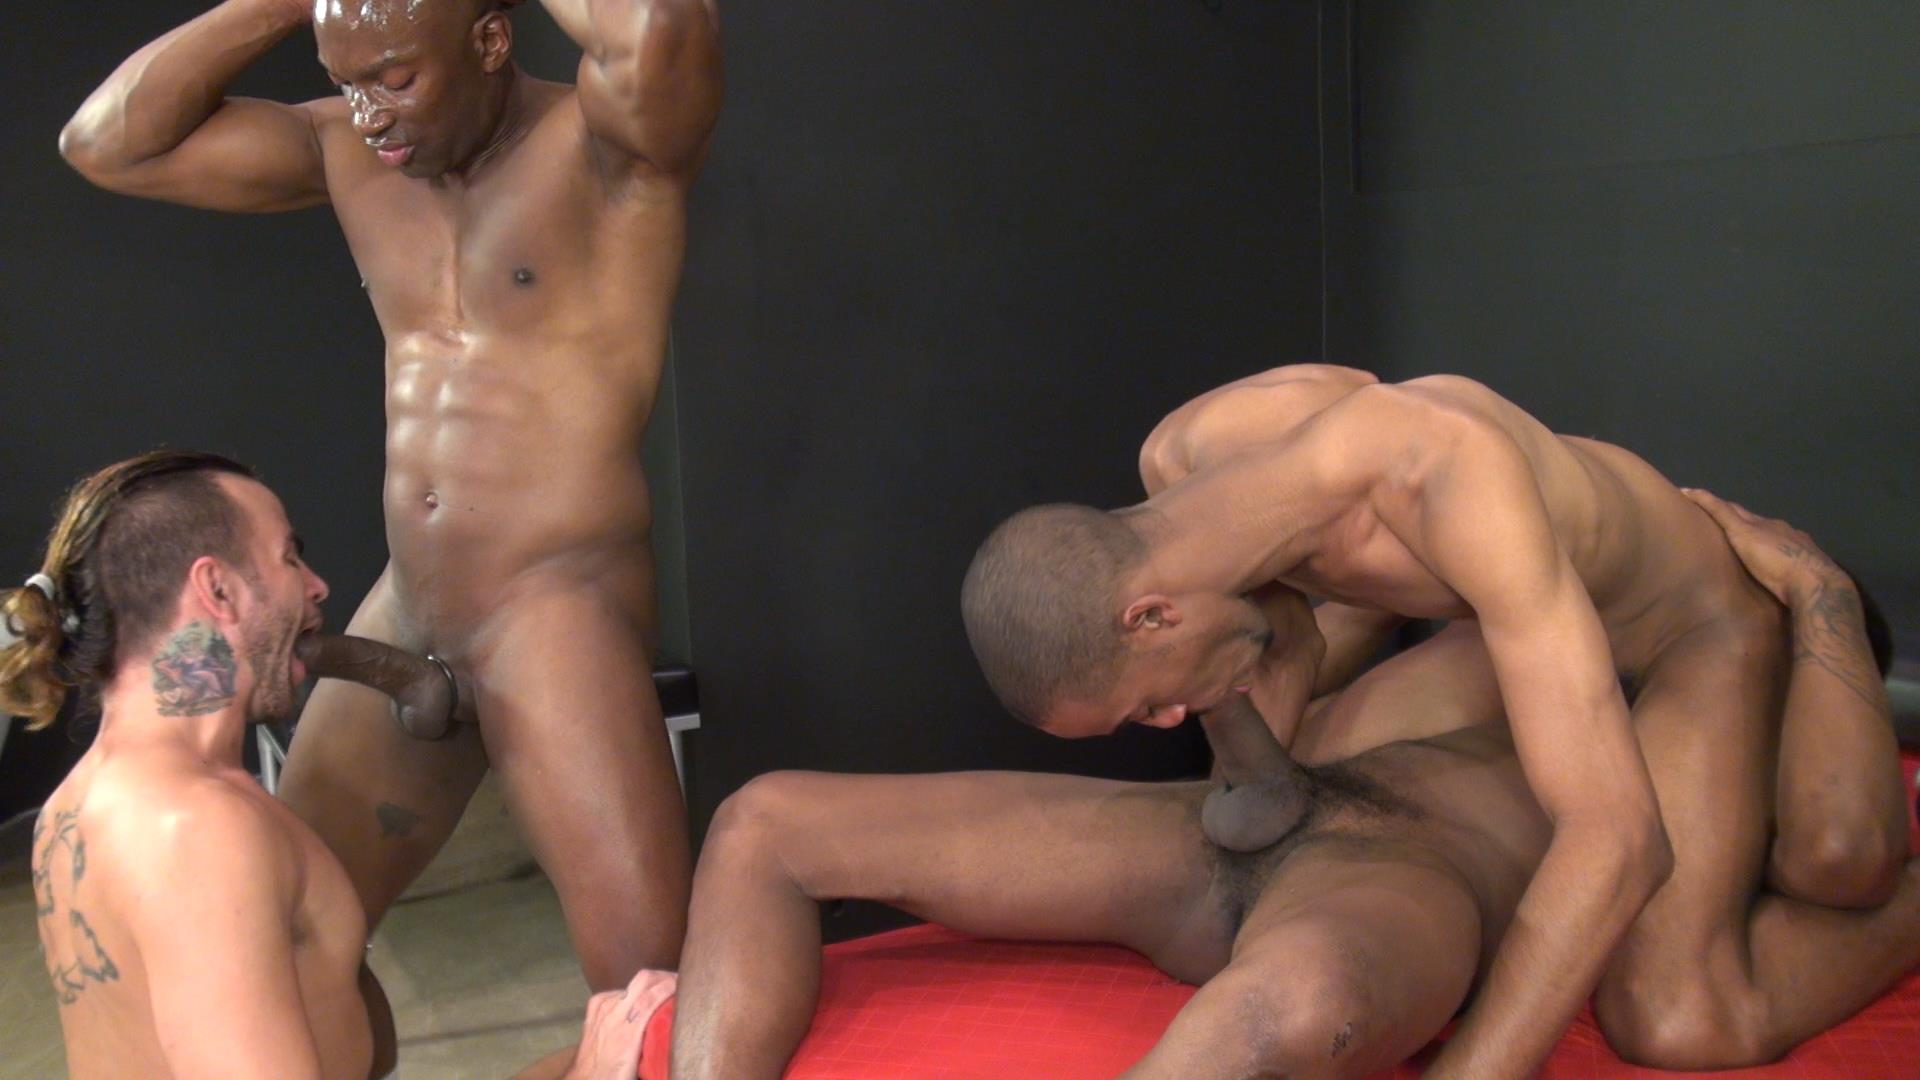 Rough ebony gay sex